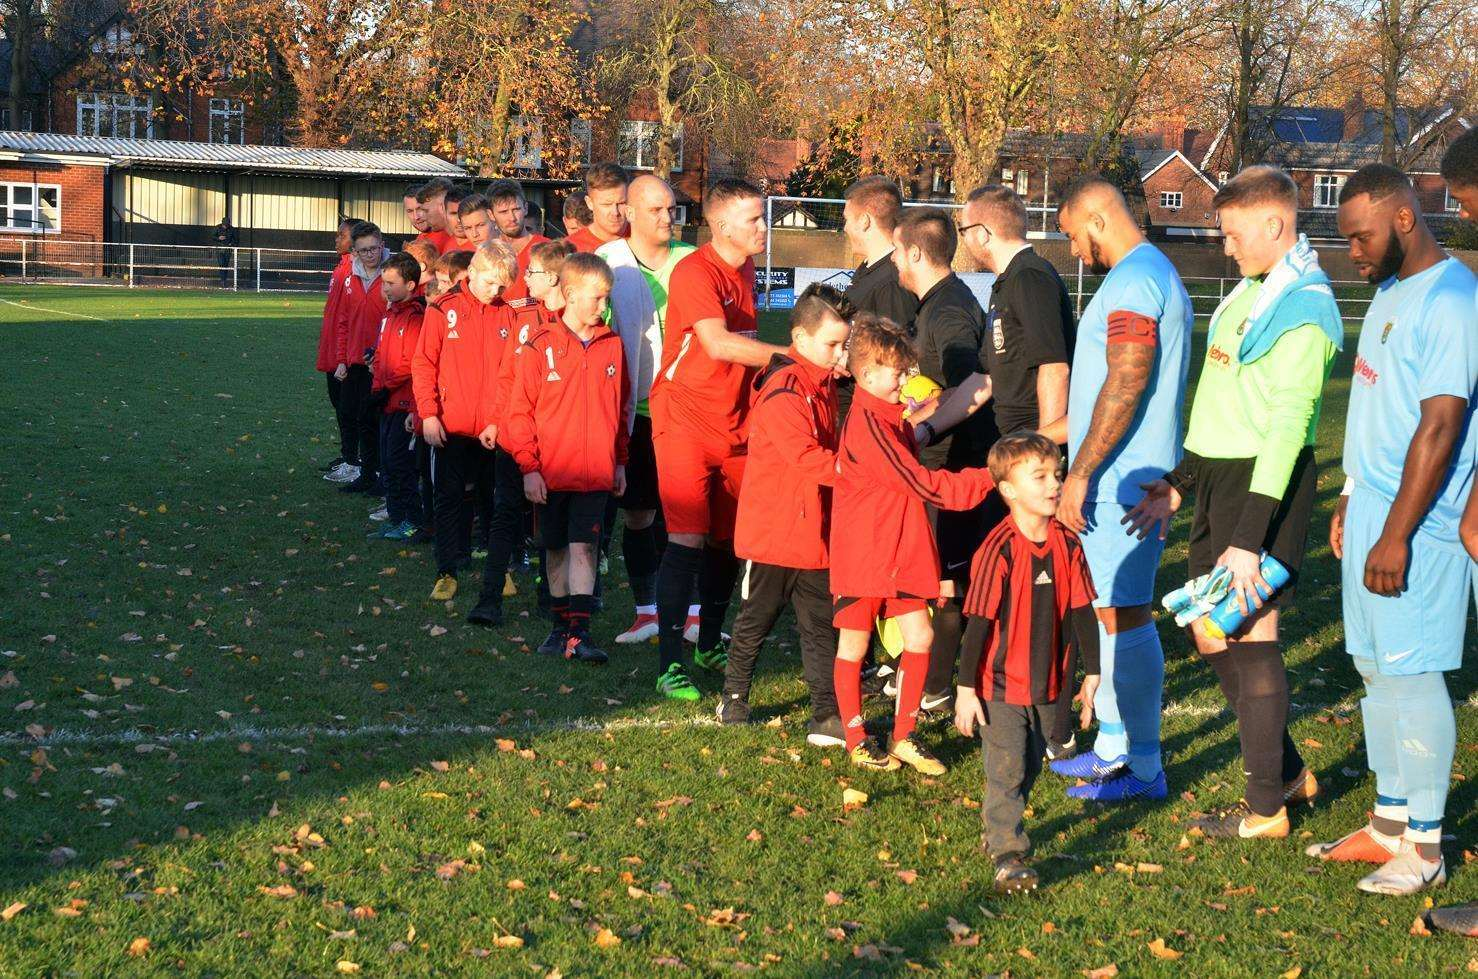 Pinchbeck United before their game against Rugby Town at Sir Halley Stewart Playing Field, Spalding, in November 2018. Photo by Tim Wilson.